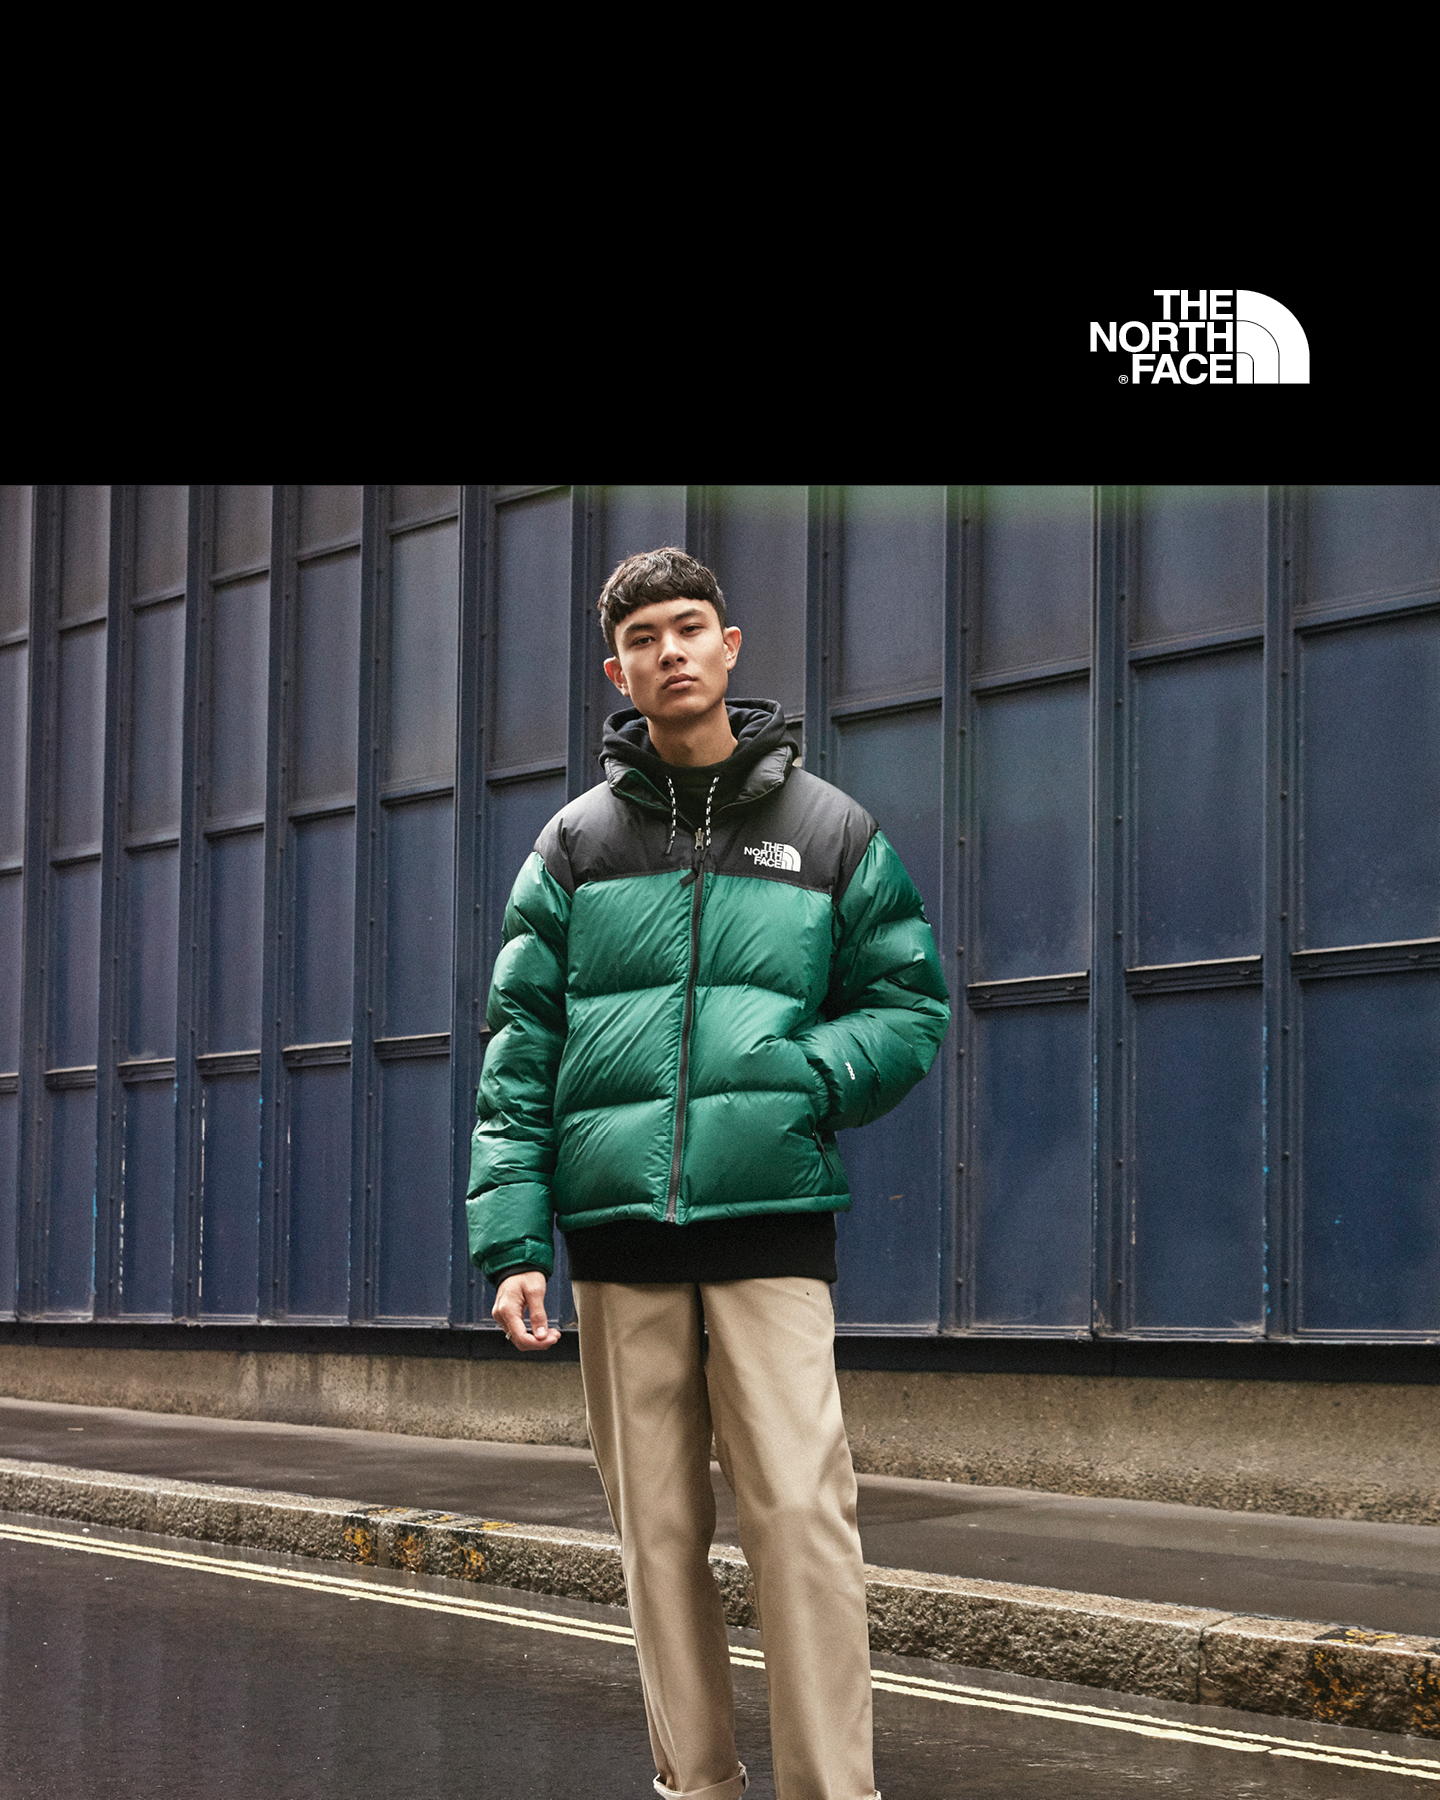 The North Face A/W '19